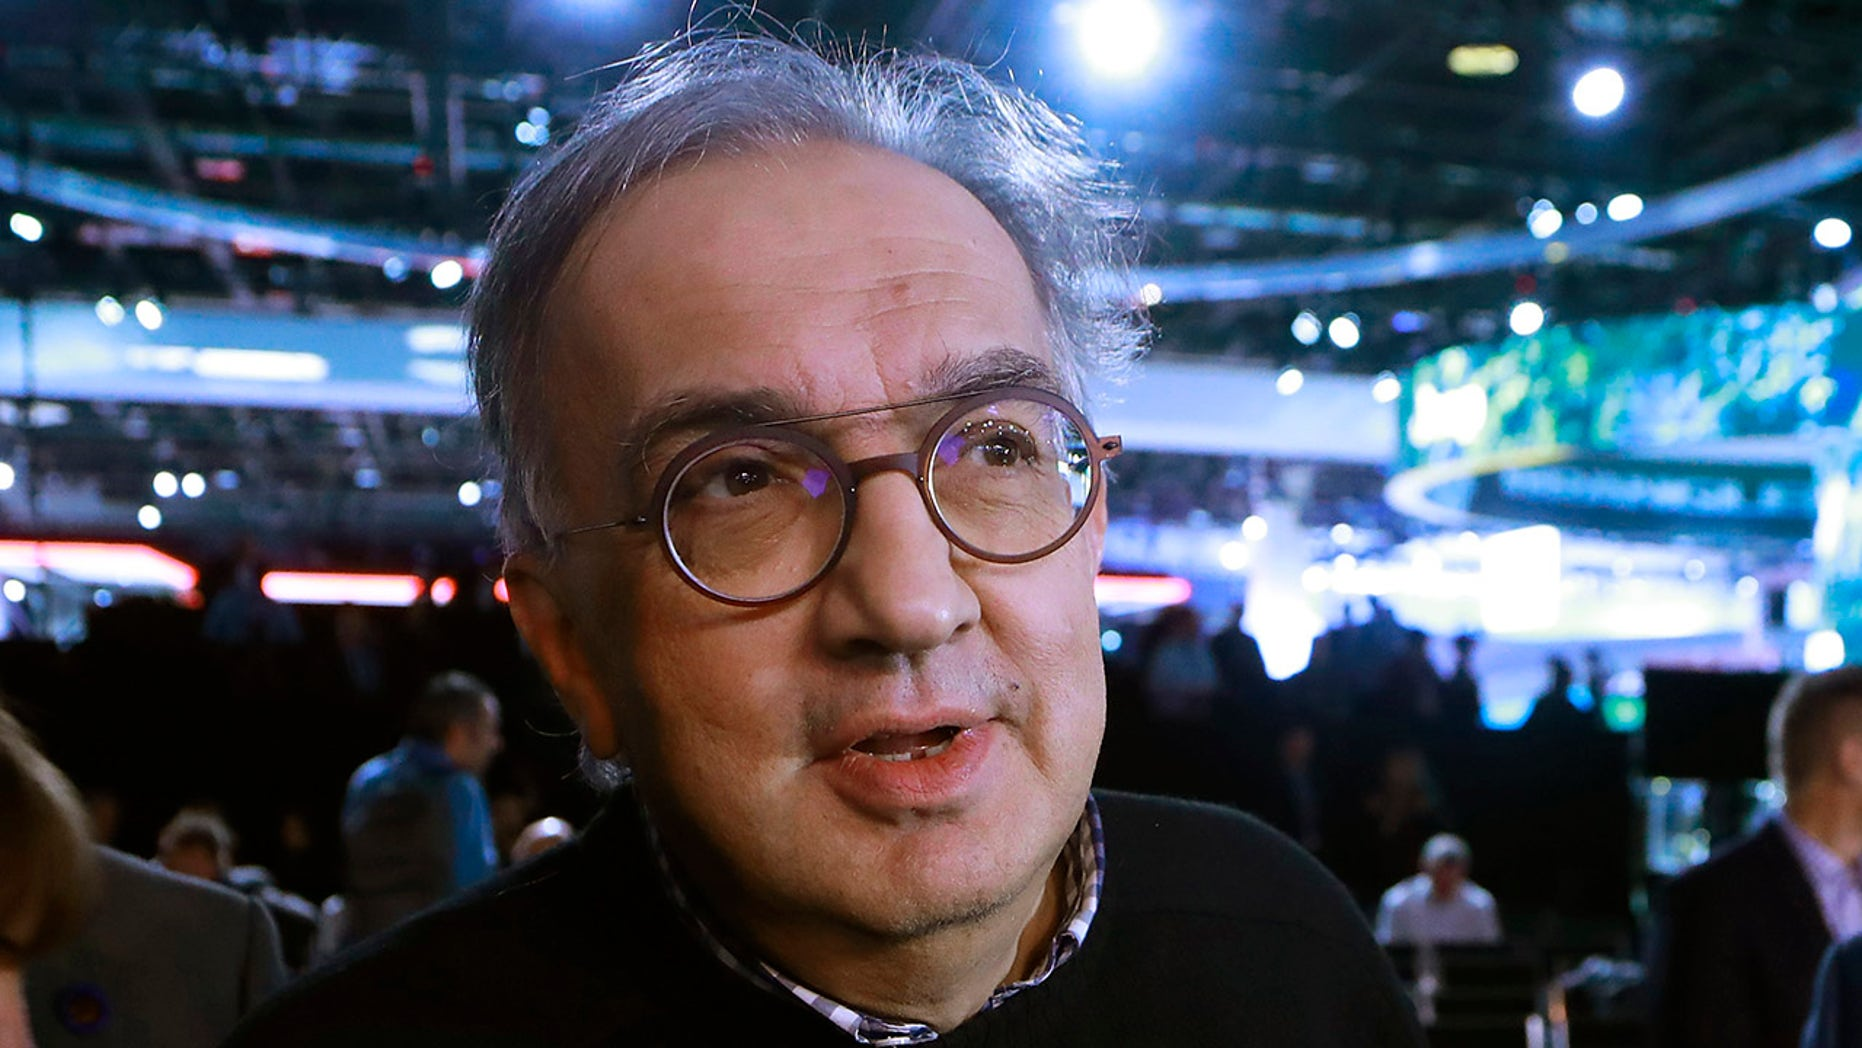 FILE - In this Tuesday, Jan. 16, 2018 filer, Fiat Chrysler Automobiles CEO Sergio Marchionne is interviewed after the unveiling of the new 2019 Jeep Cherokee during the North American International Auto Show, in Detroit. On Wednesday, July 25, 2018, holding company of Fiat founding family said Sergio Marchionne, who oversaw turnarounds of Fiat and Chrysler, has died. (AP Photo/Carlos Osorio, File )